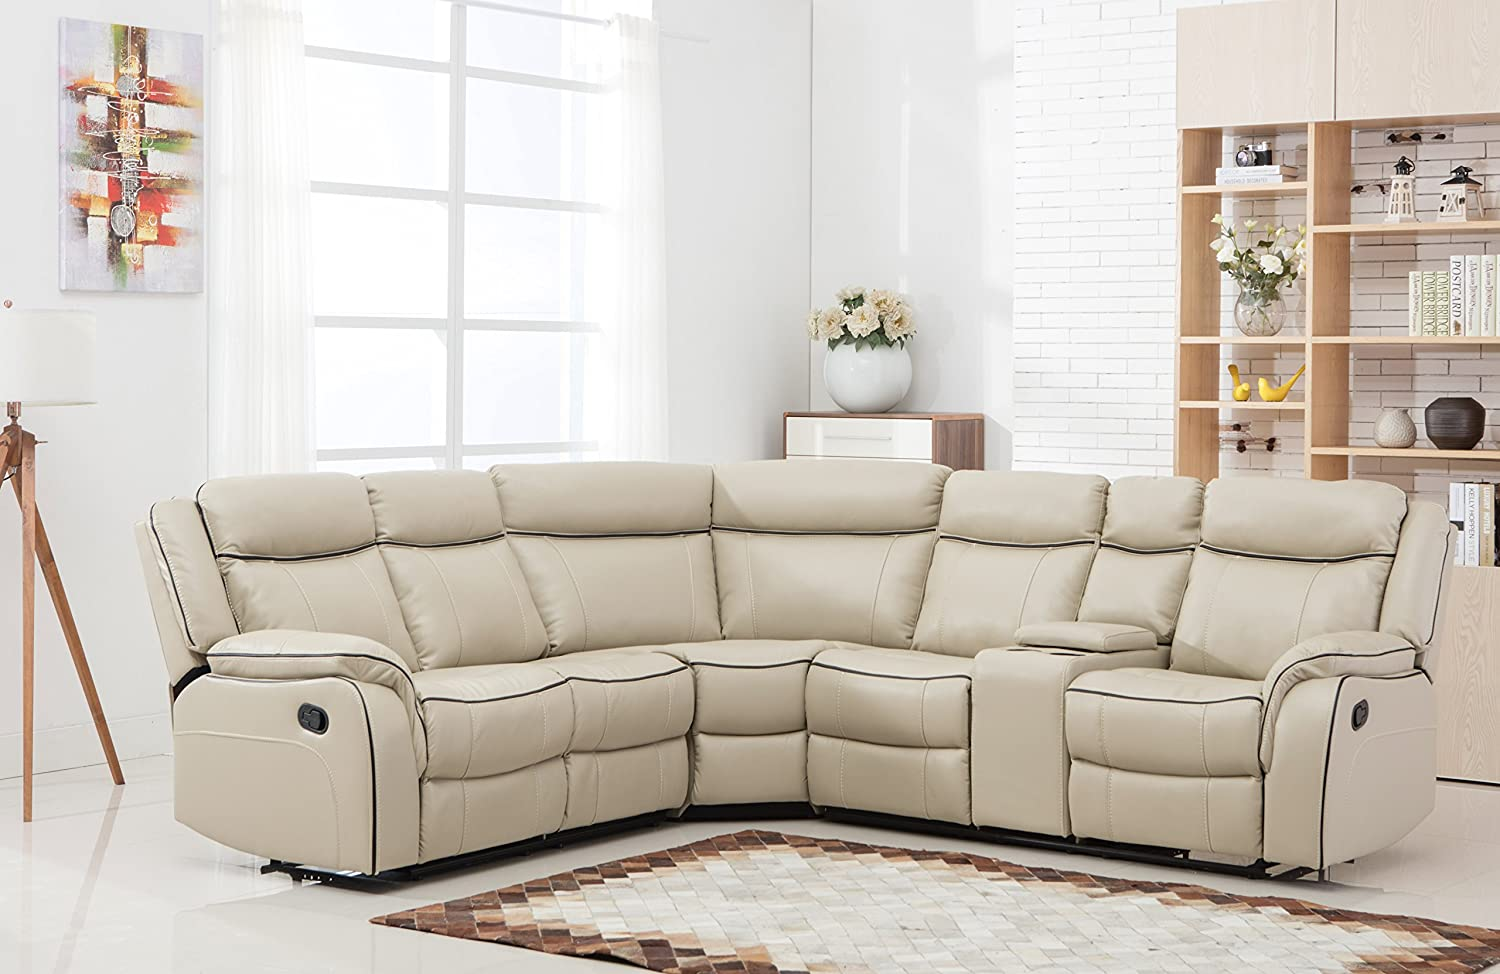 Amazon.com: Large Classic And Traditional Two Tone Bonded Leather Reclining  Corner Sectional Sofa (Beige): Kitchen U0026 Dining